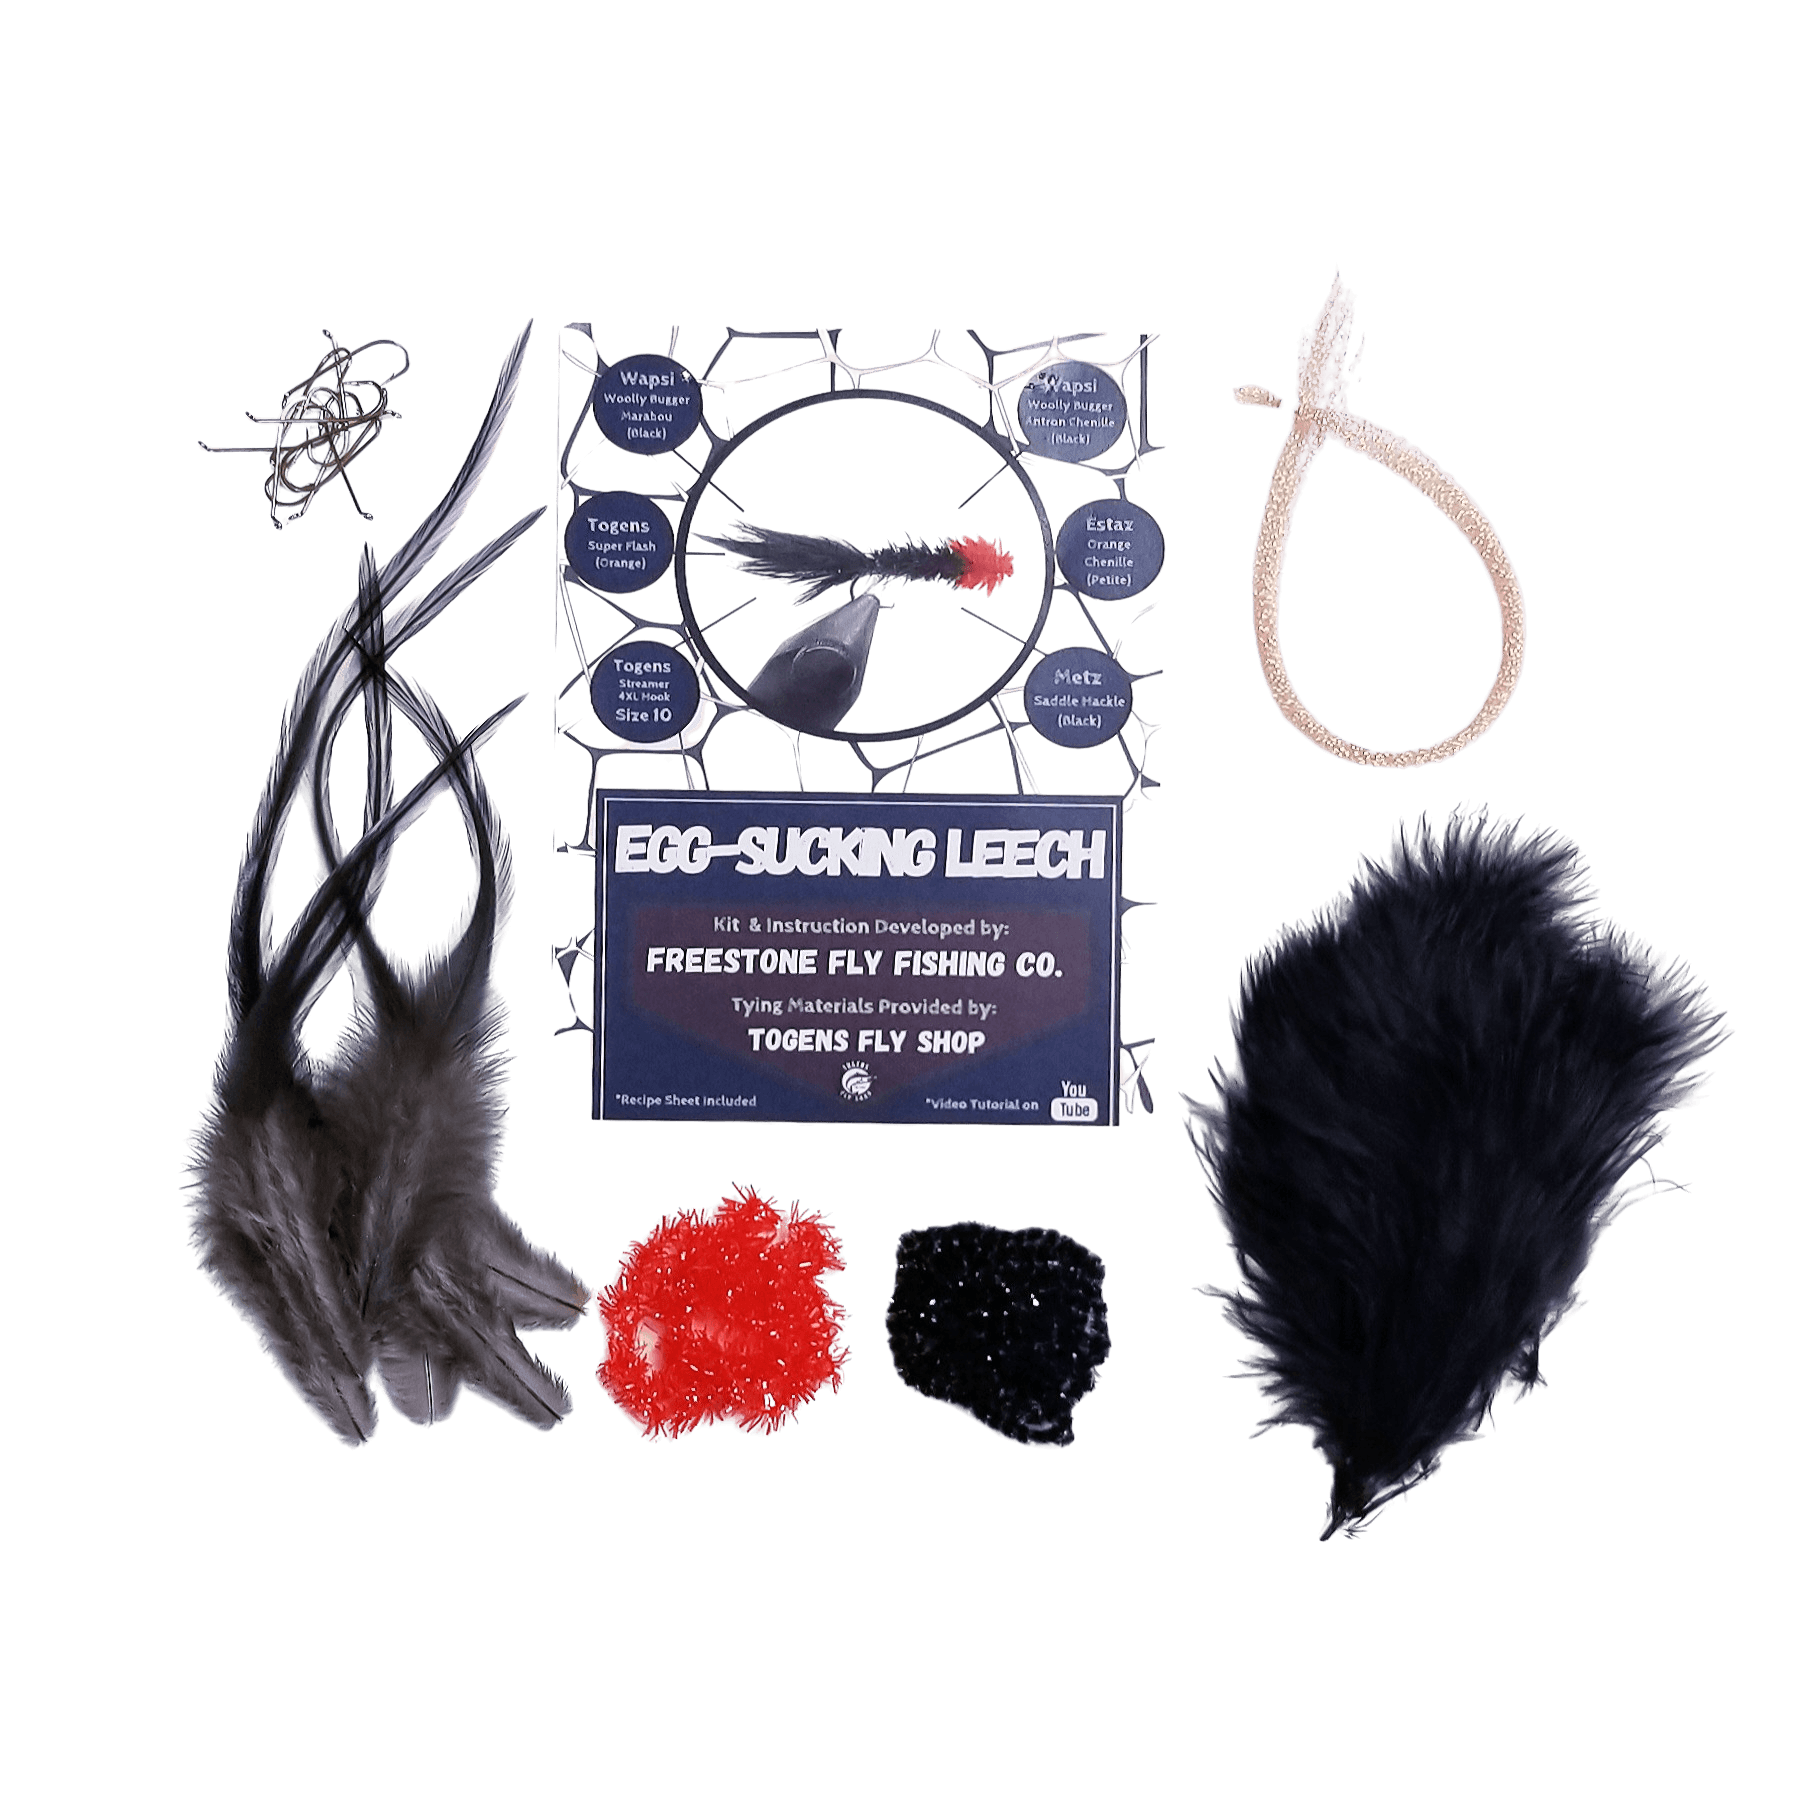 Egg-Suckling Leech - Togens Fly Shopfly tying kit